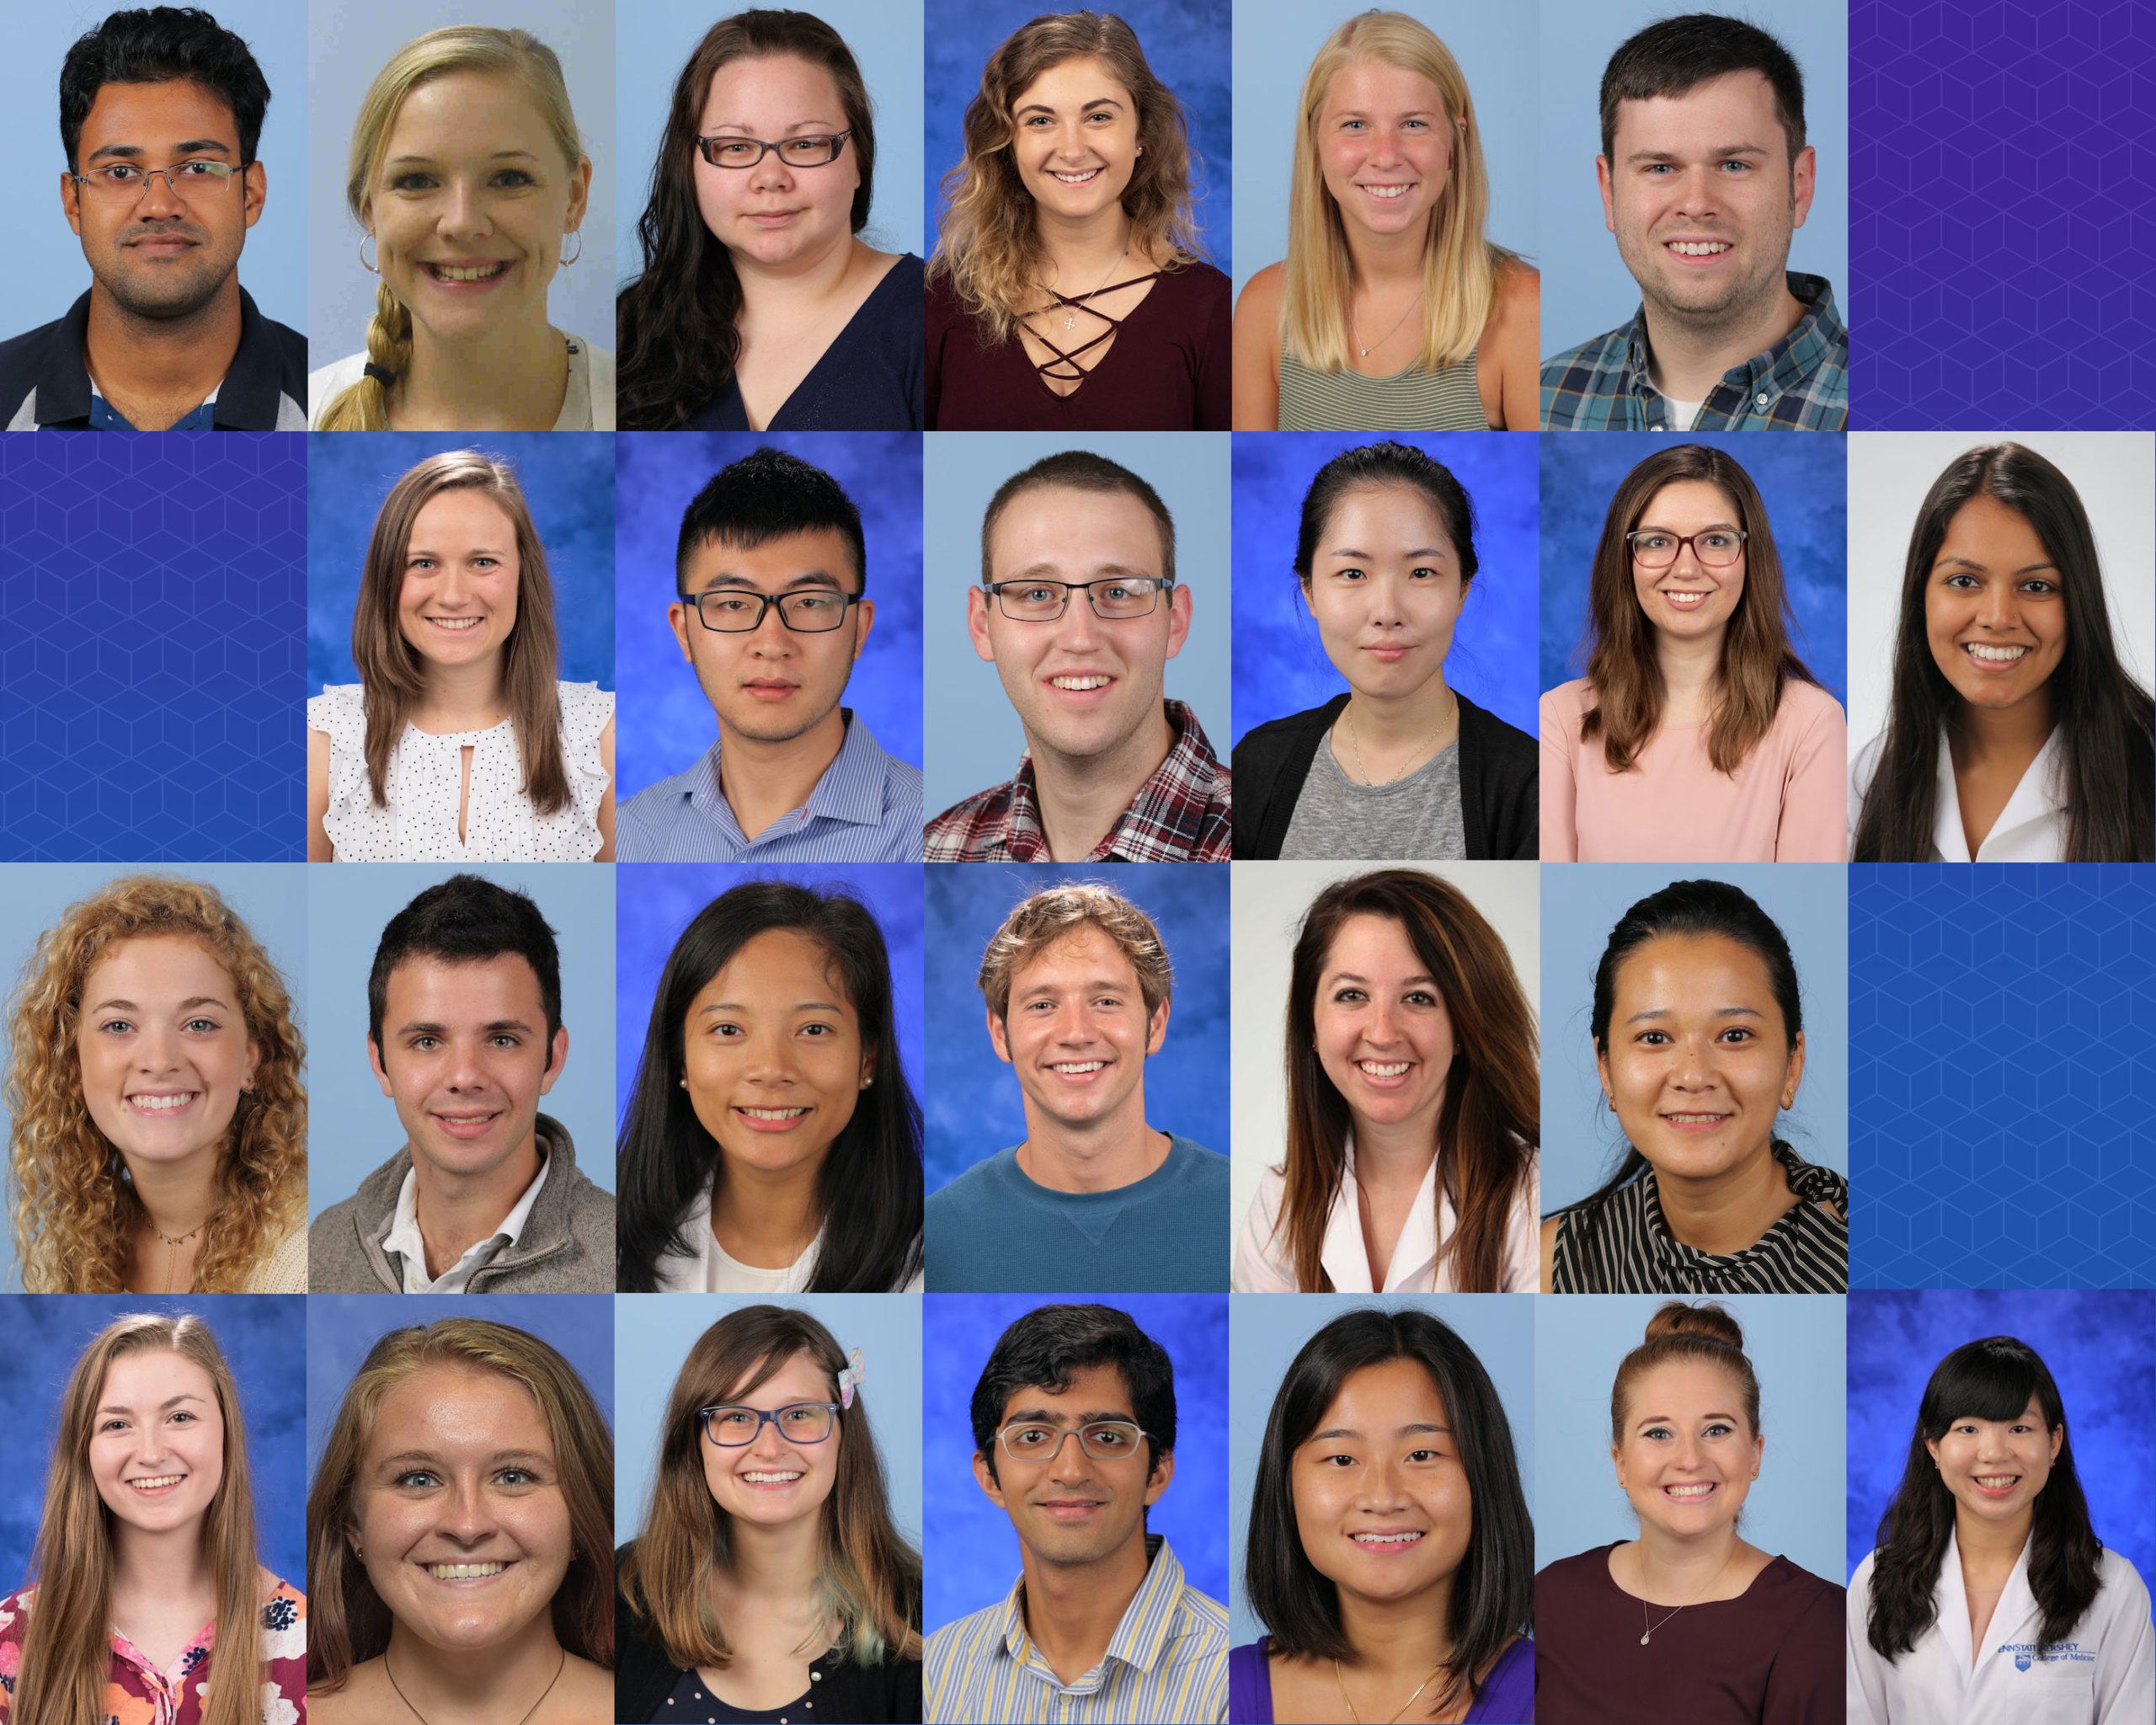 A collage shows professional head-and-shoulders photos of 25 Penn State College of Medicine graduate students.